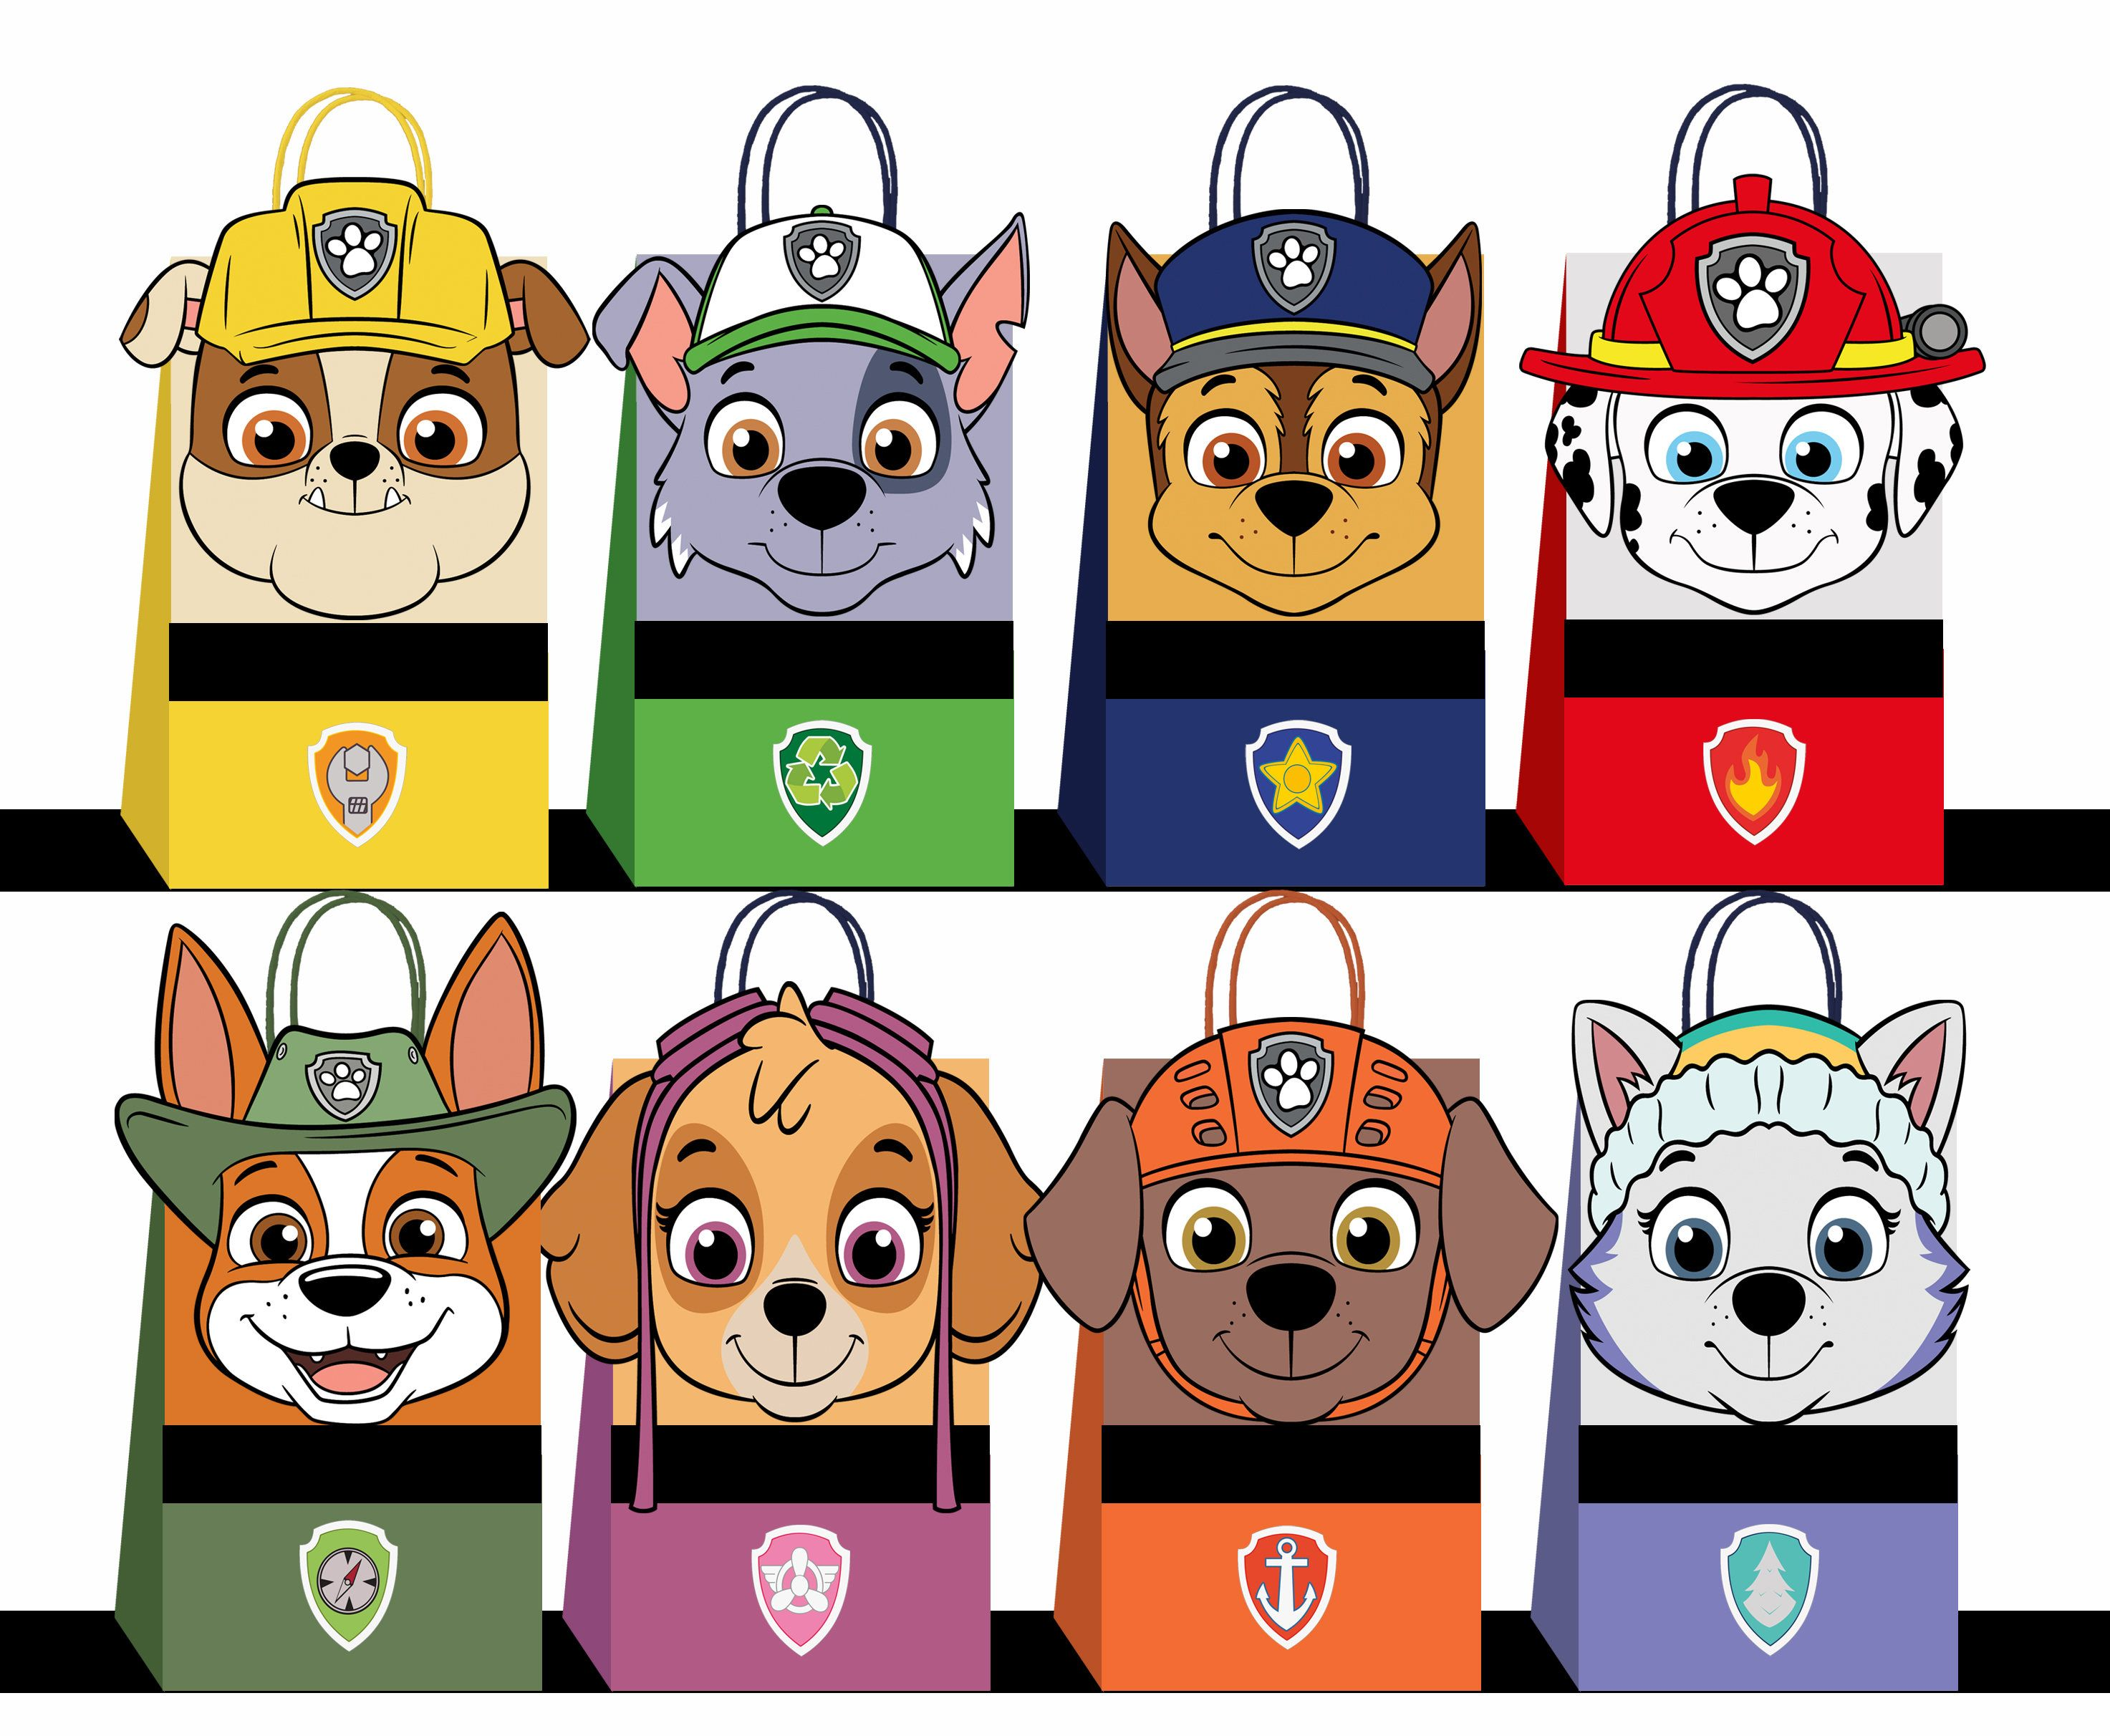 Printable Paw Patrol Pictures